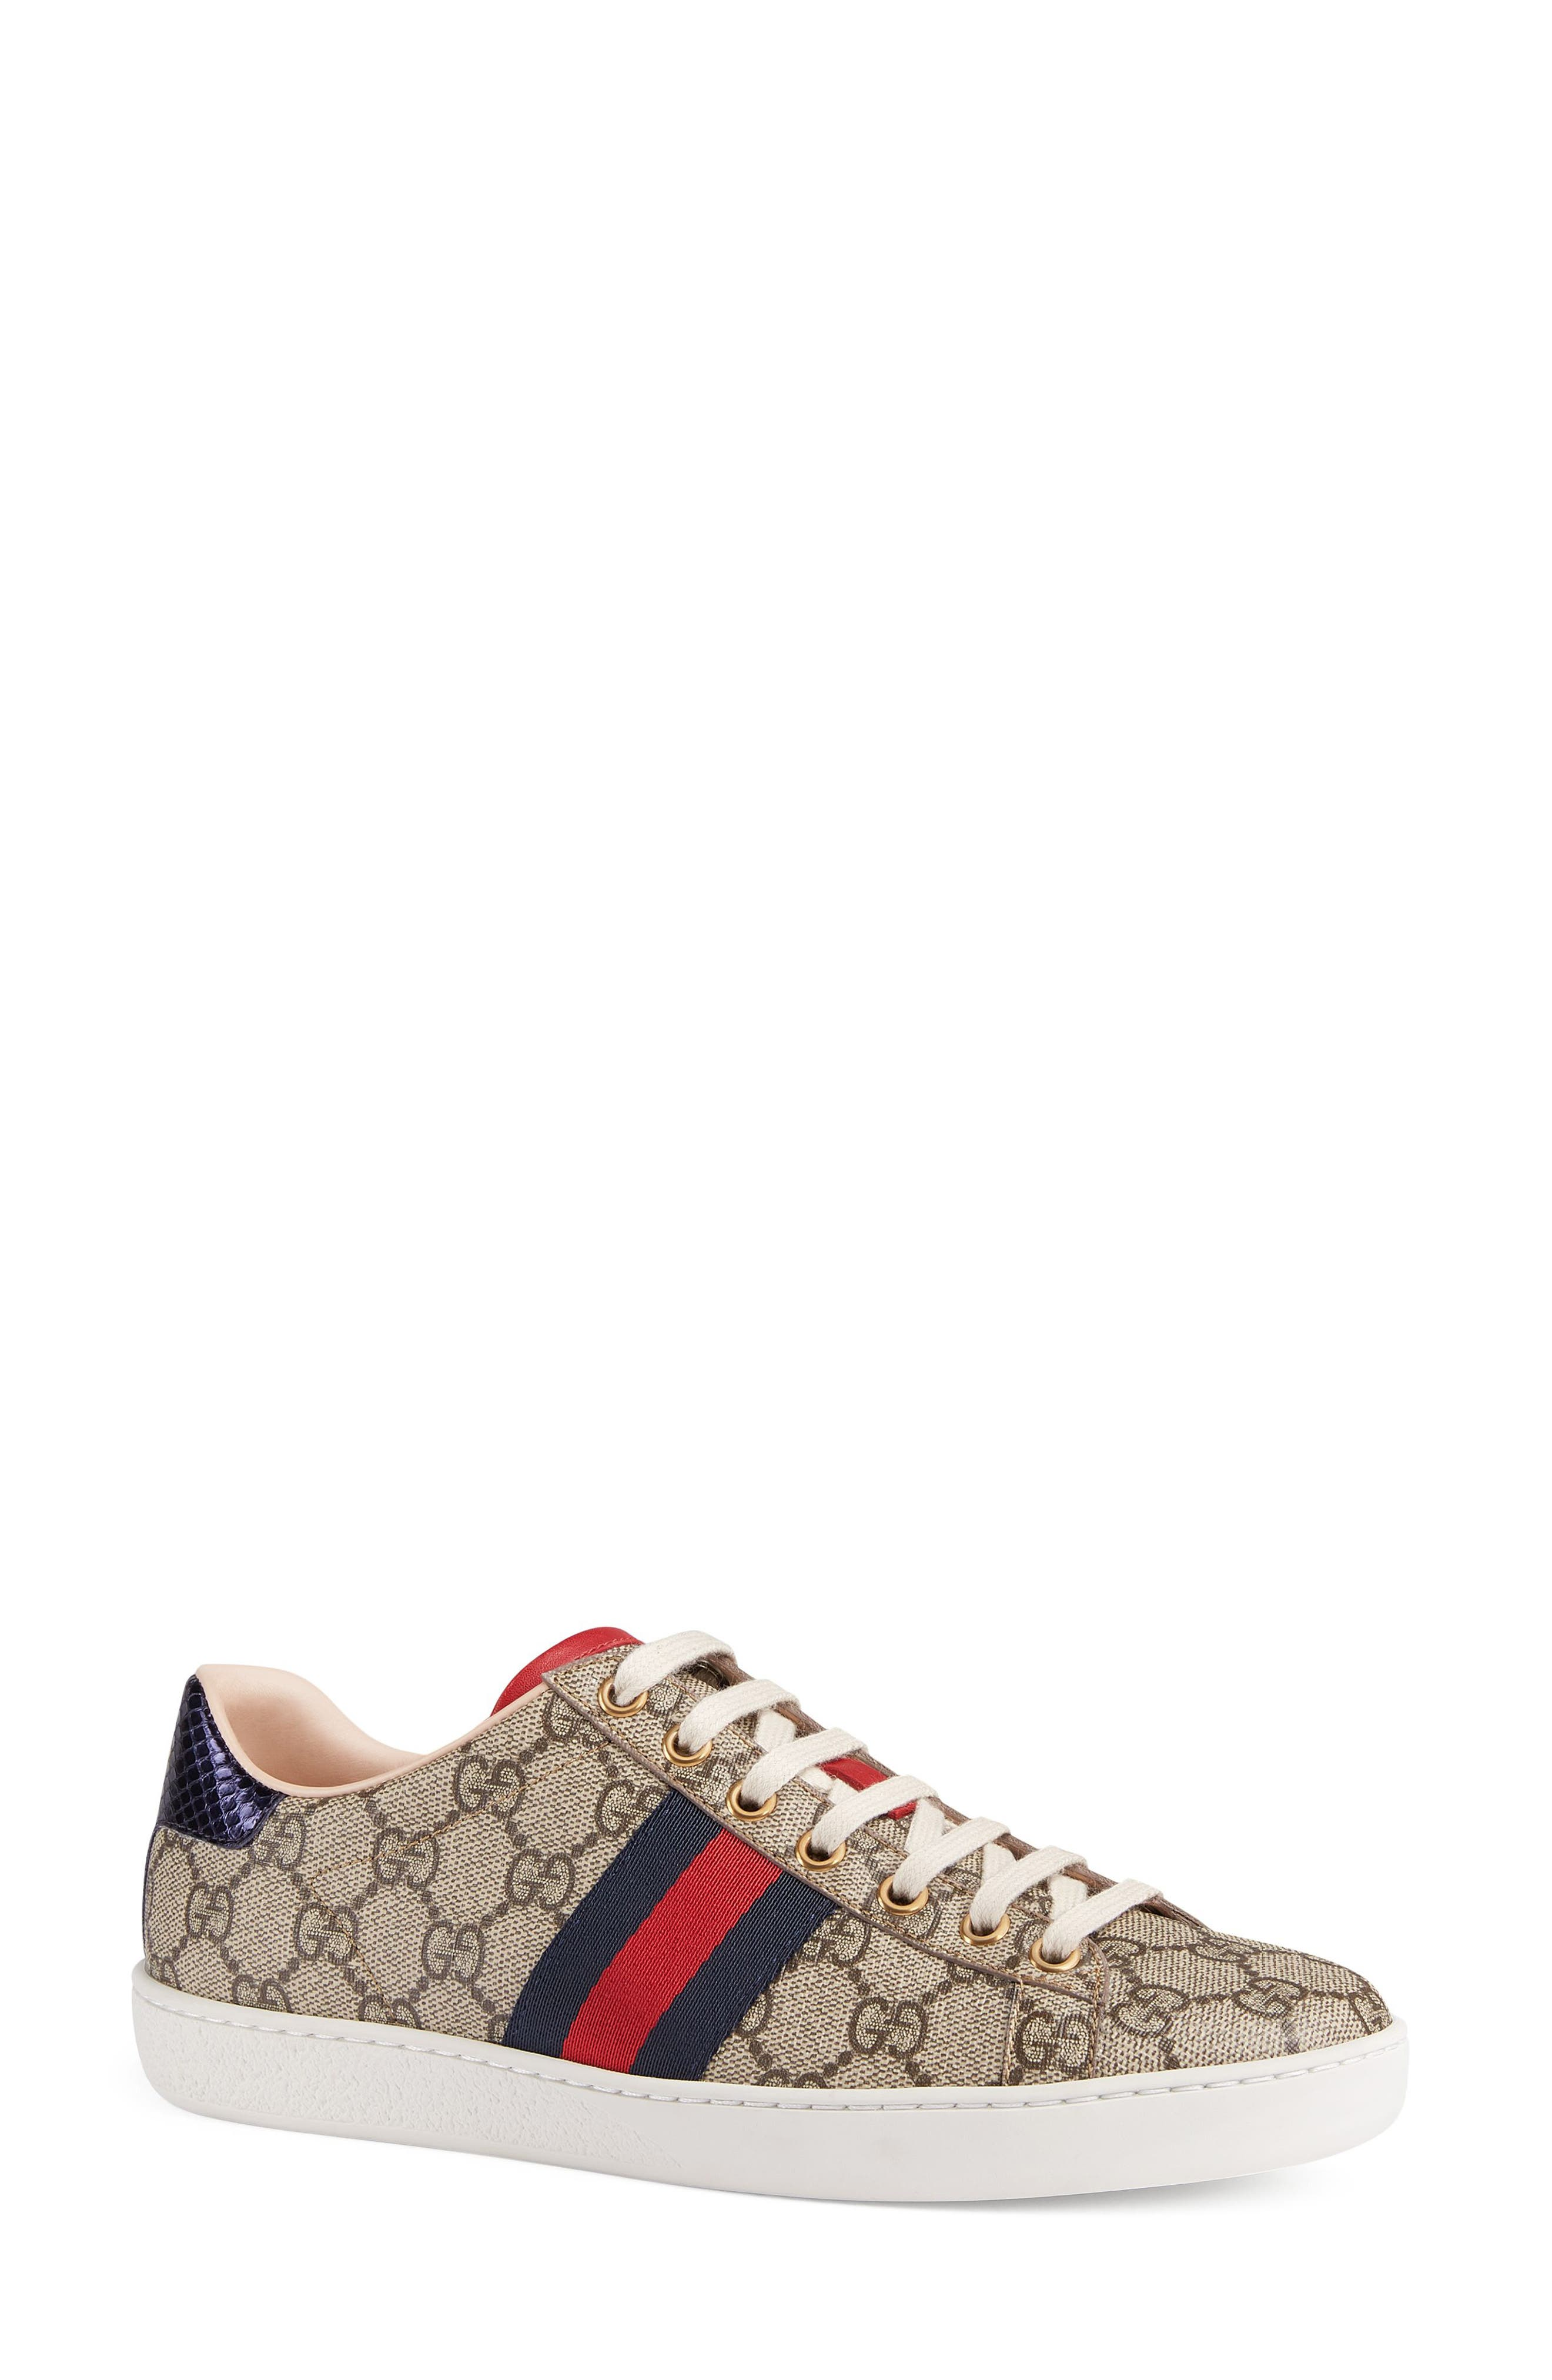 Women's Flat Gucci Shoes | Nordstrom